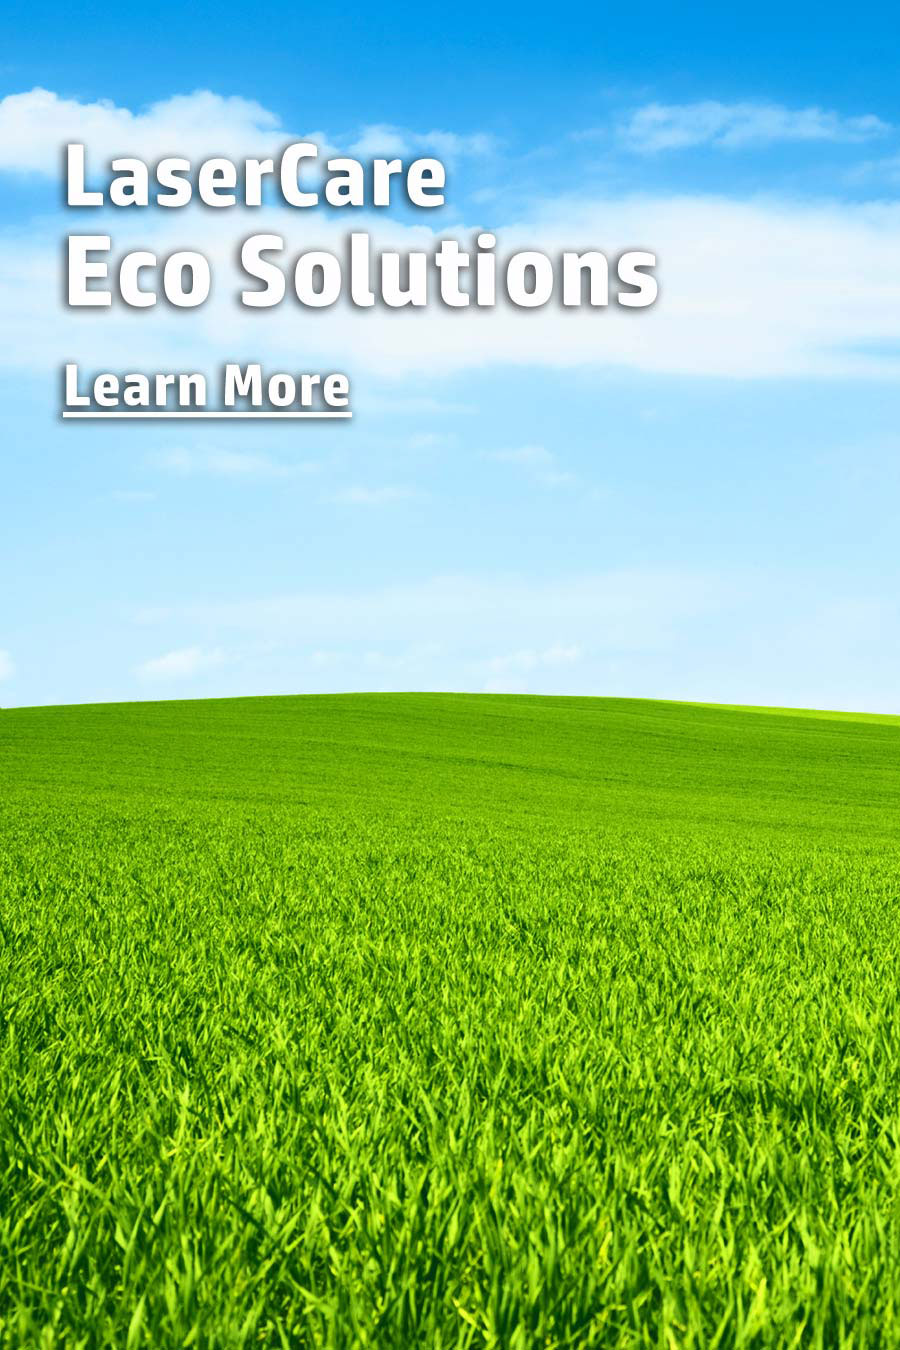 LaserCare Eco Solutions